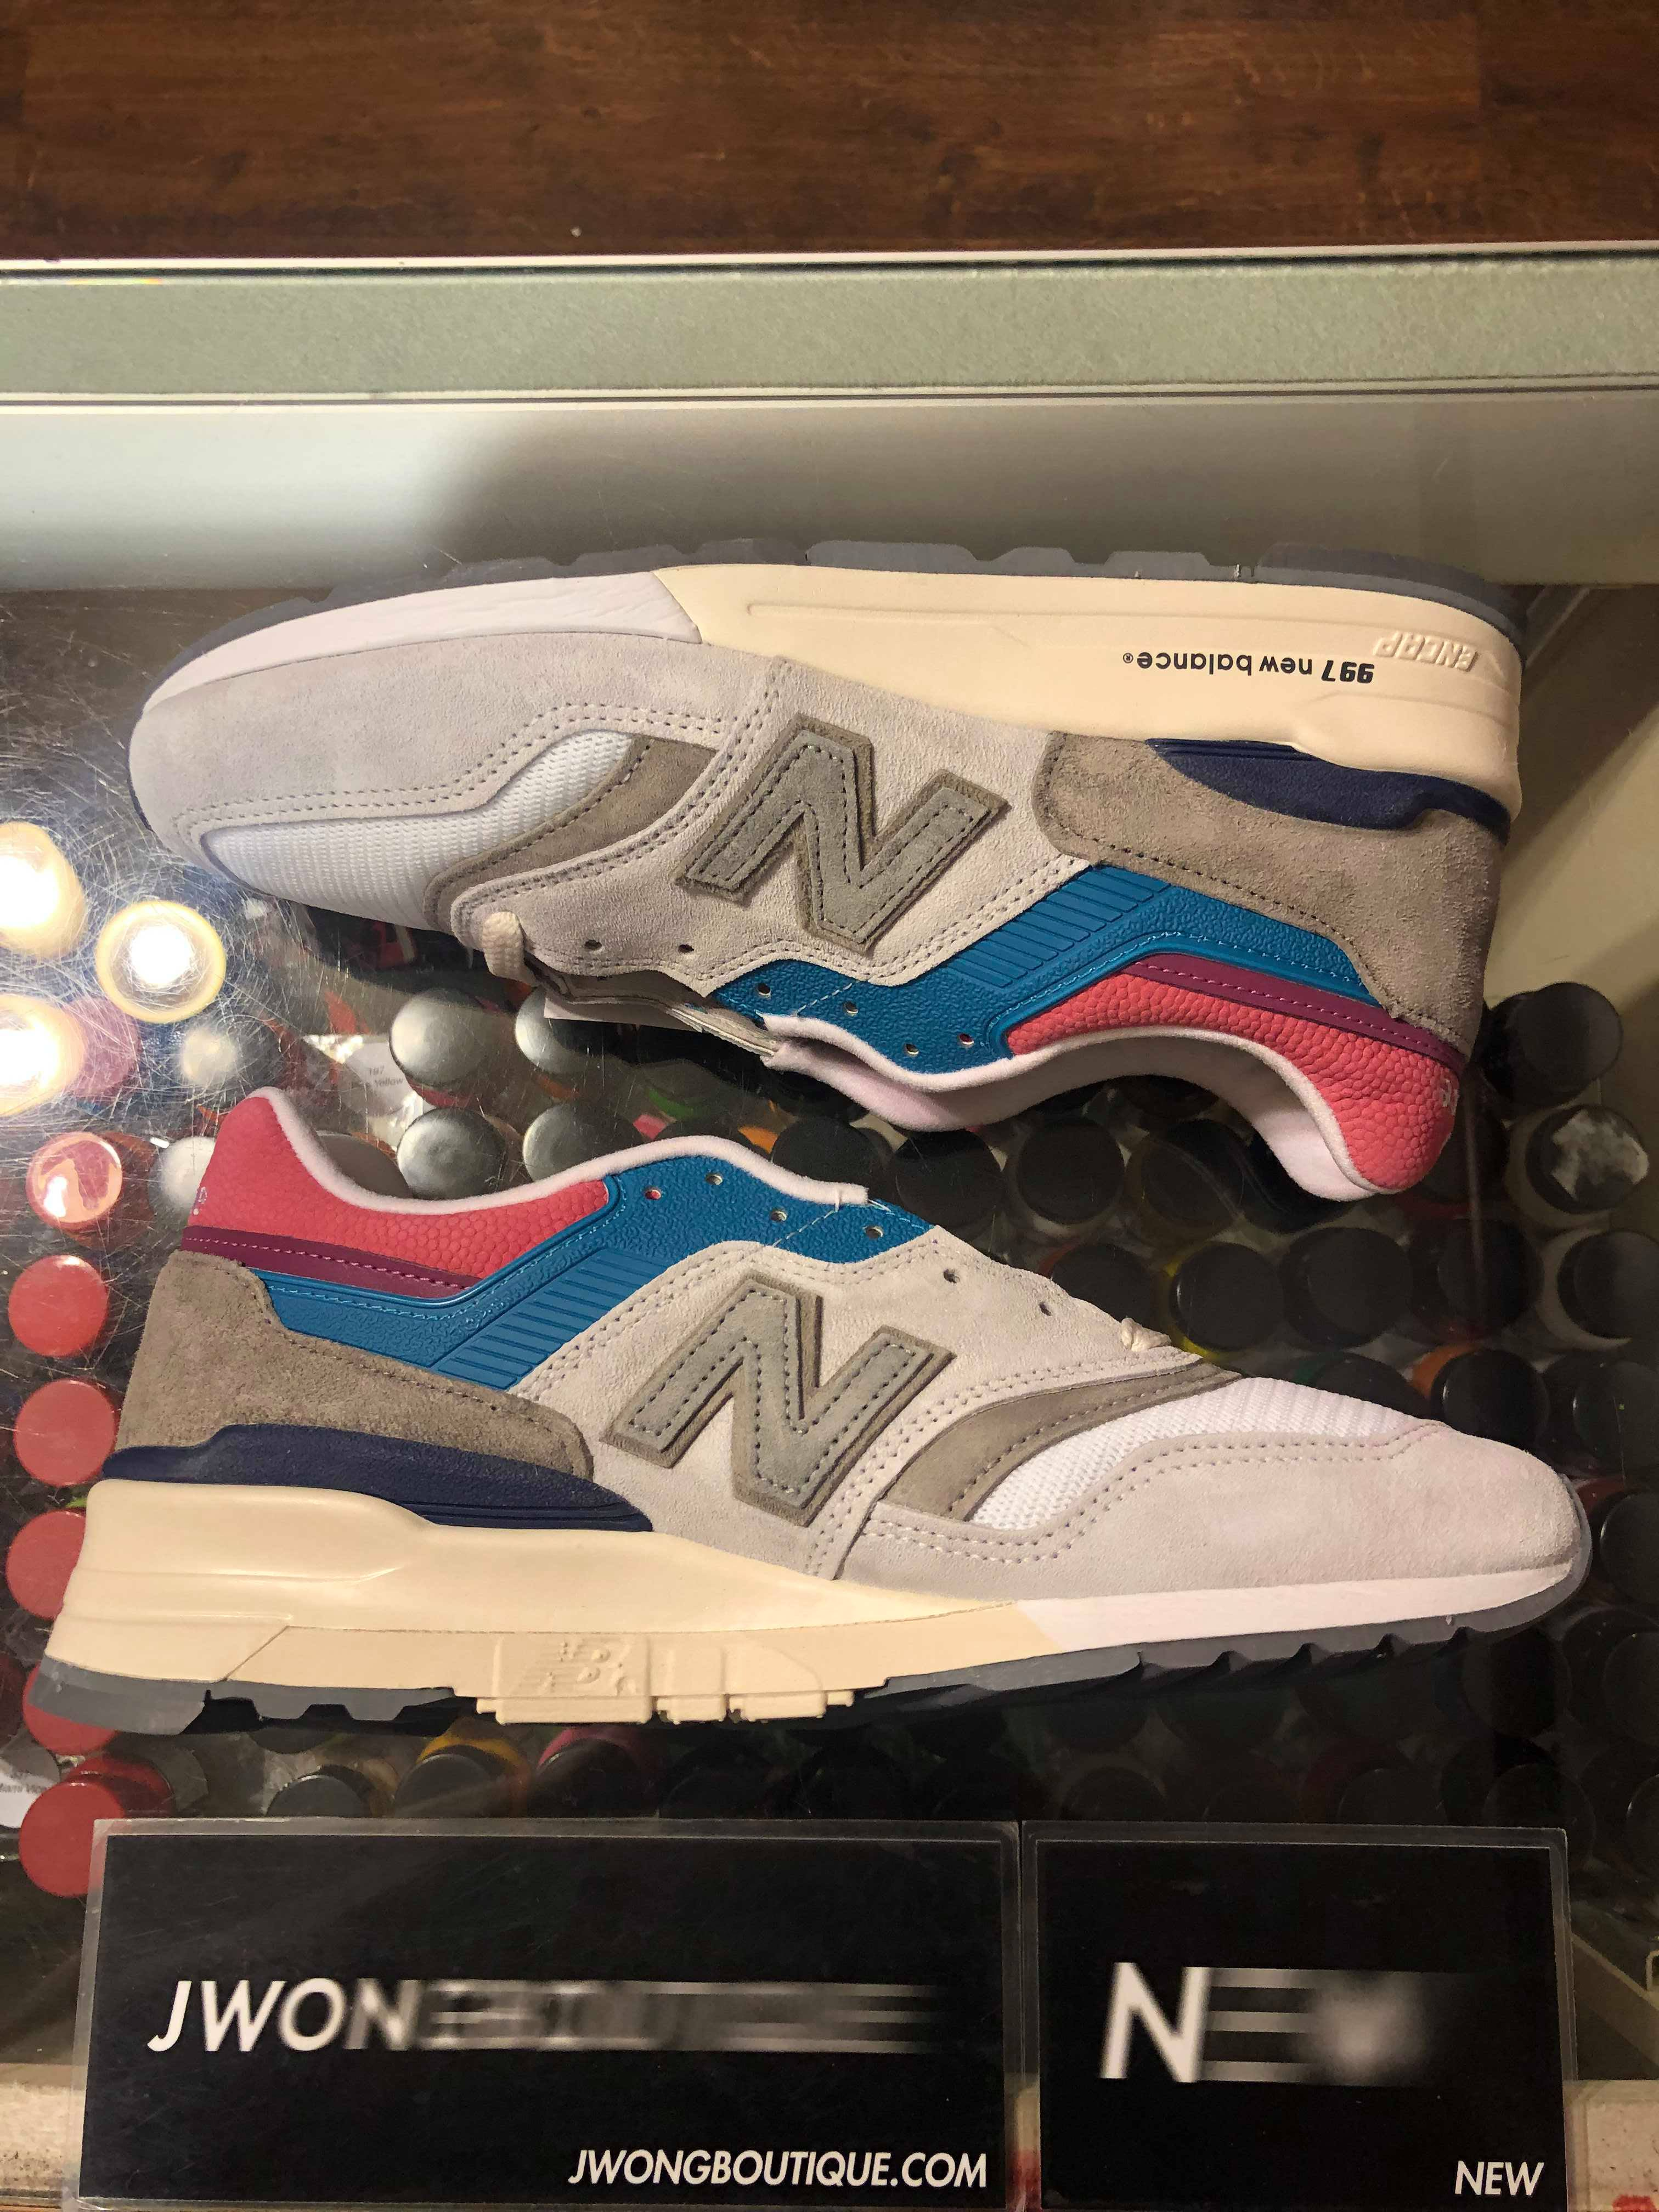 fe3bc95ee75eb 2019 New Balance 997 Aime Leon Dore Pink Tongue | Jwong Boutique